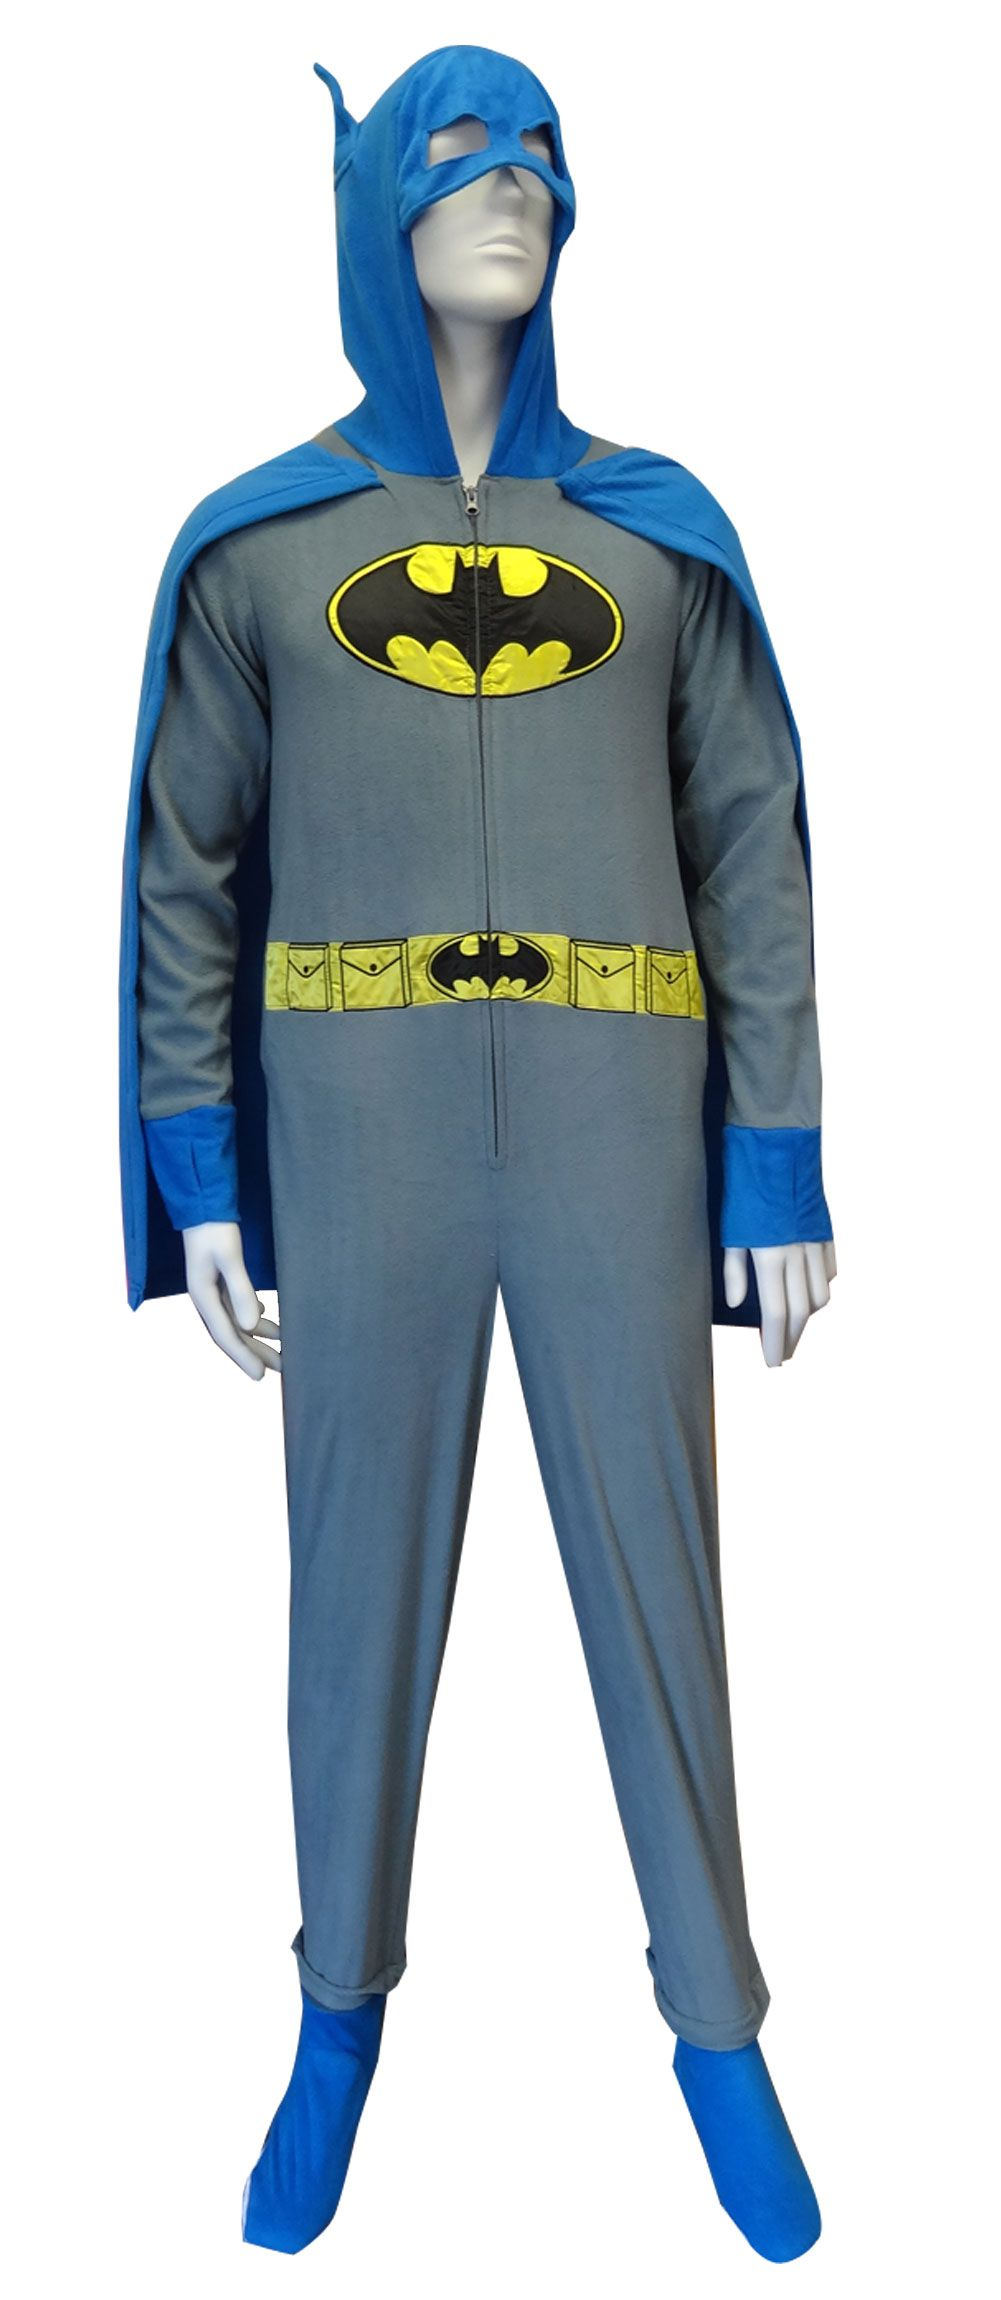 38ae23a5fd59 Batman   BatGirl Hooded Gray Onesie Footie Pajama with Cape Who says capes  are for kids  These pajamas for adults feature a bold yellow and black Bat  shield ...